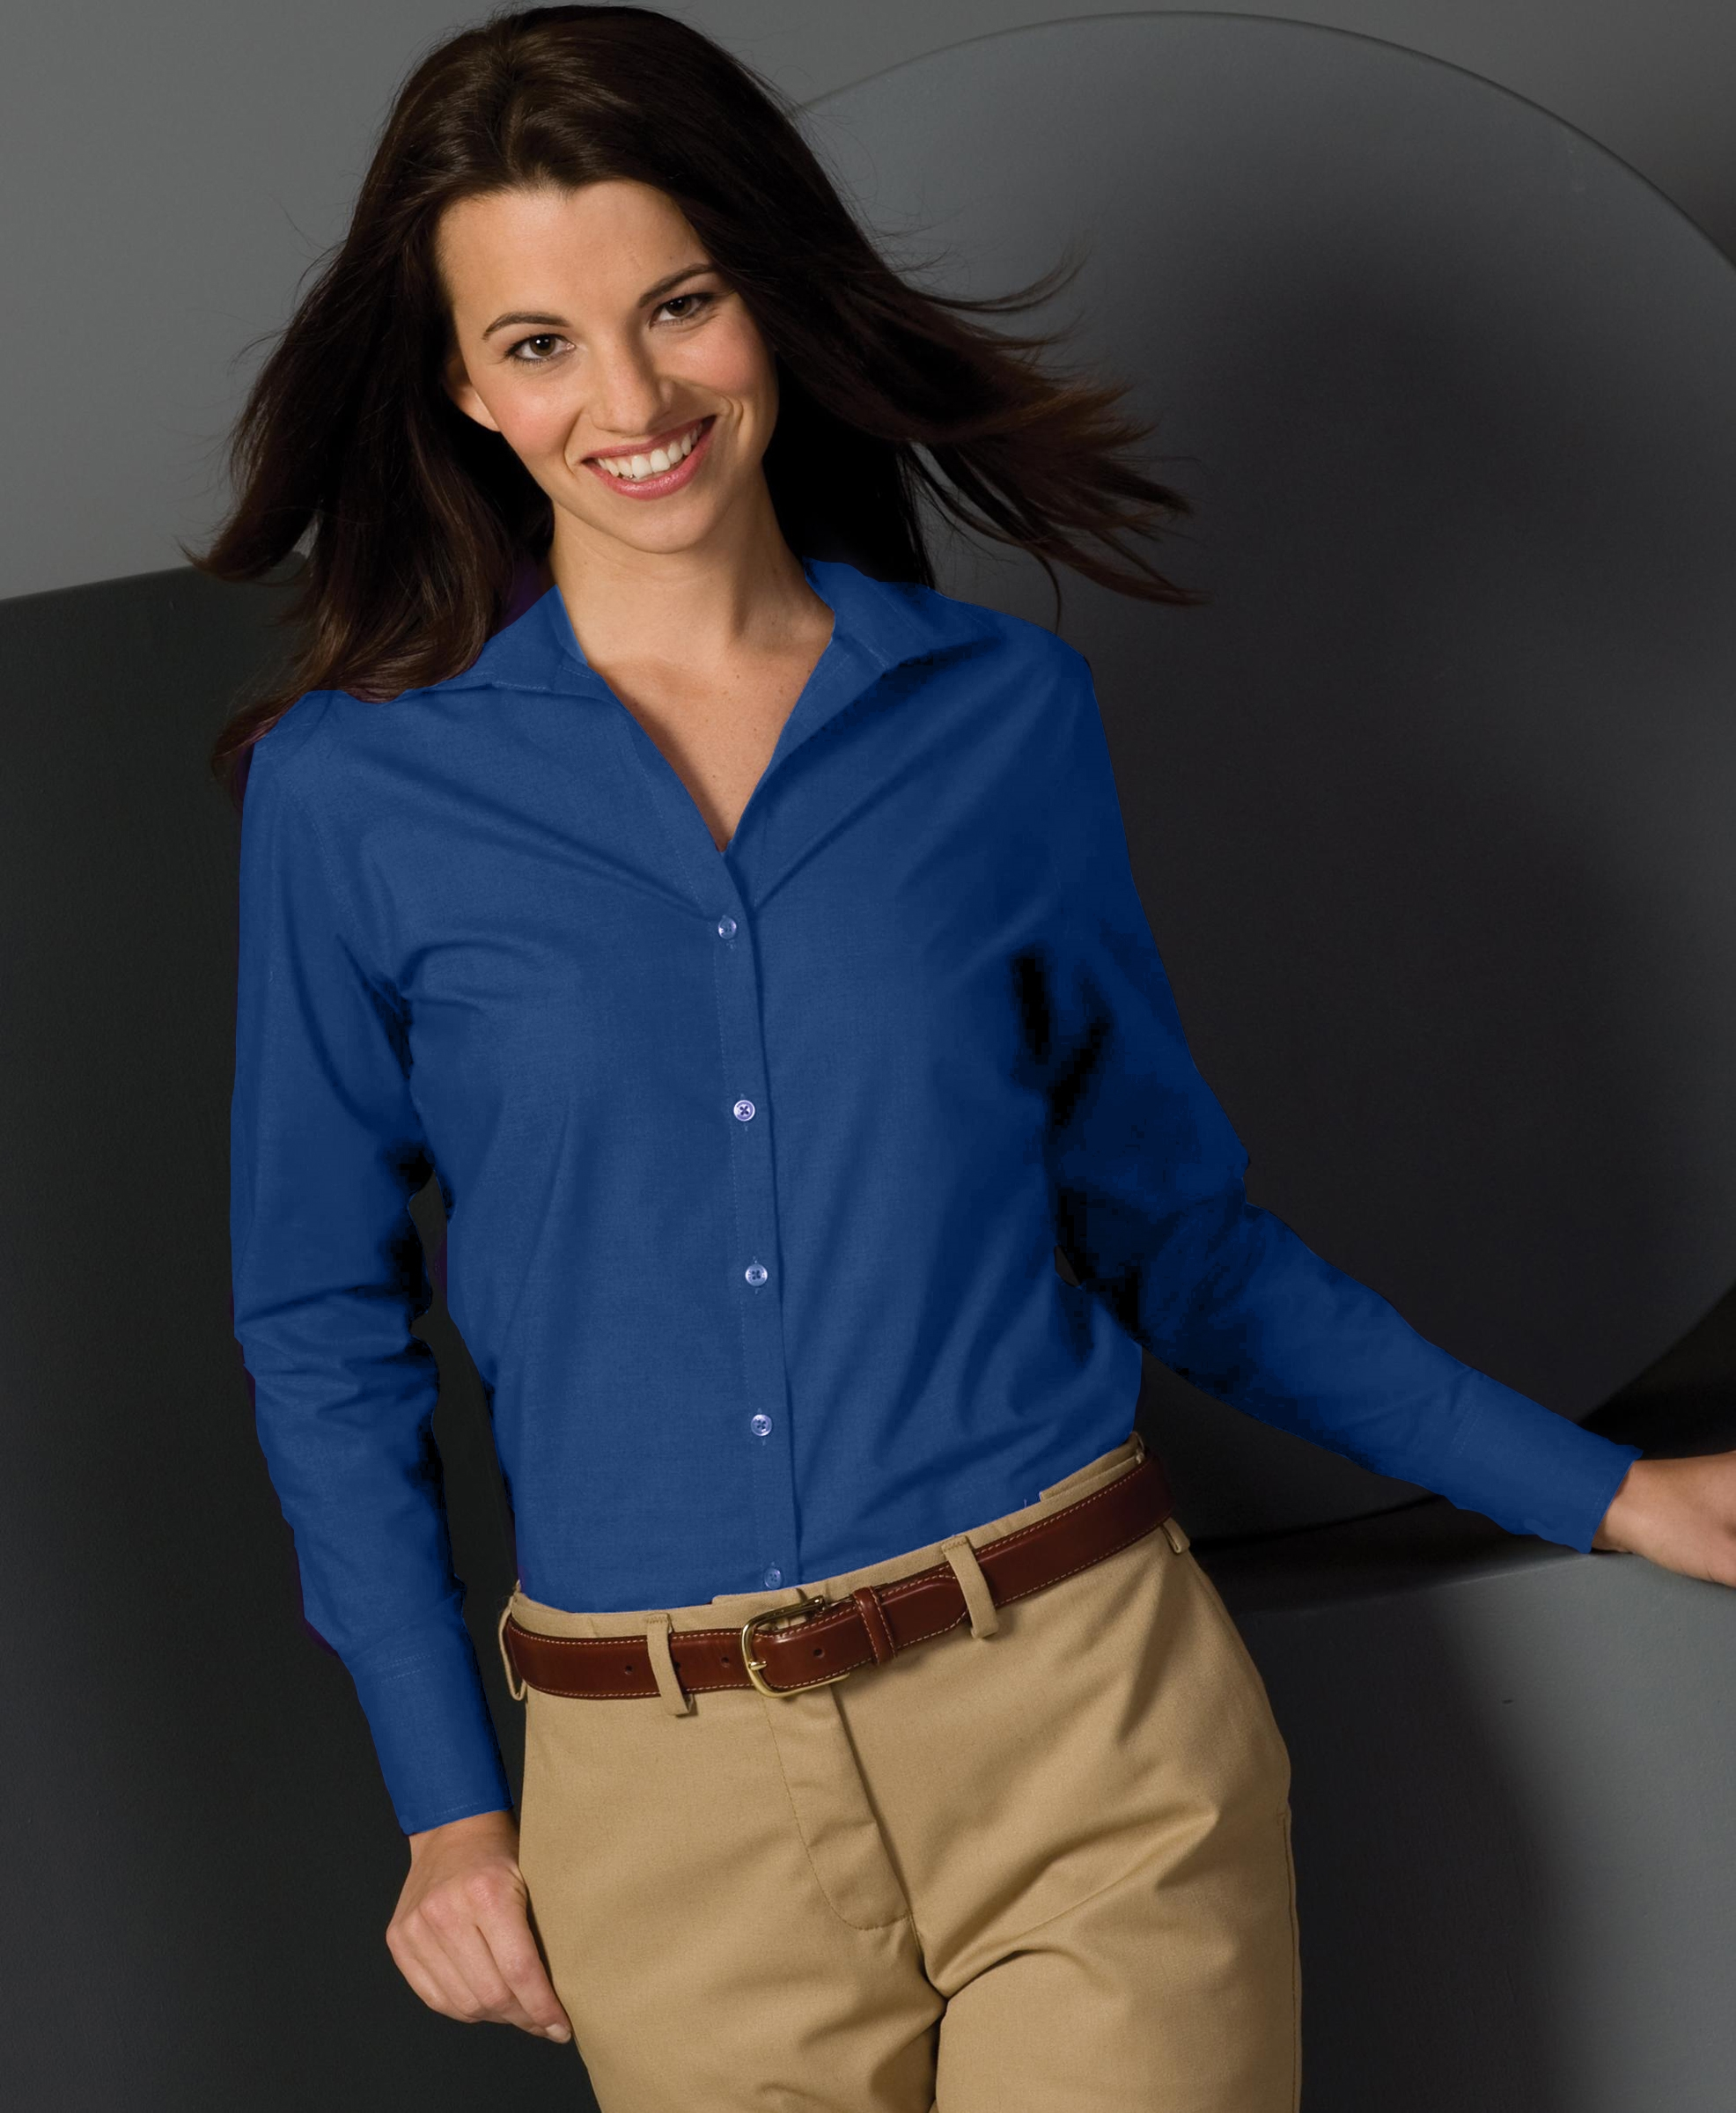 LLE5295-GP - Ladies V-Neck Button Up Poplin Long Sleeve Shirt. Sizes XXSmall-3XL